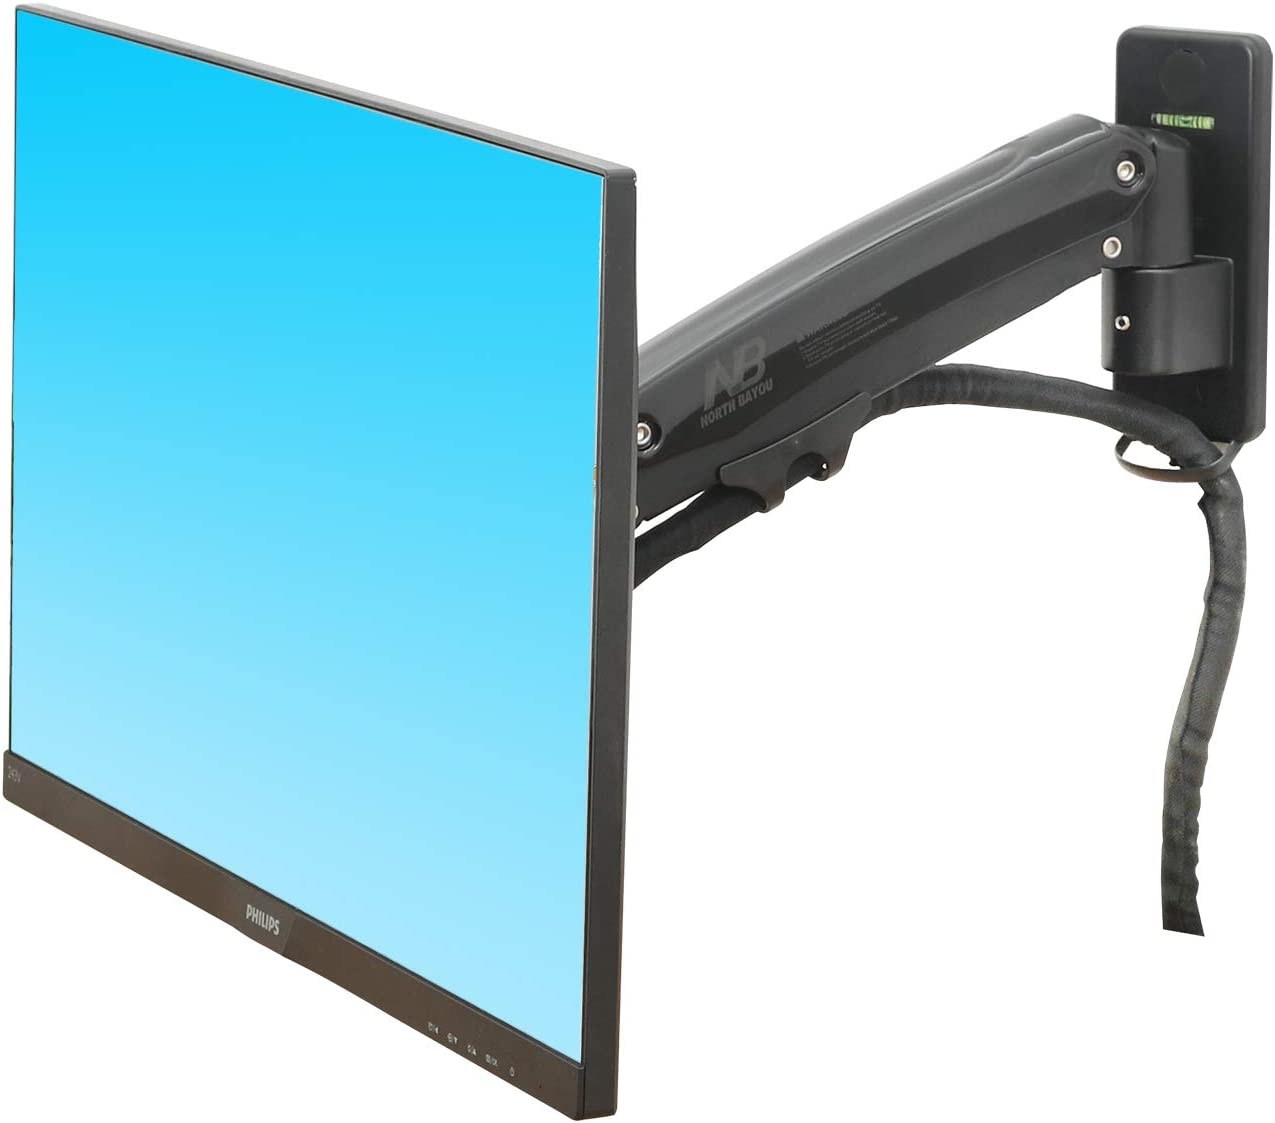 """NB North Bayou Monitor TV Wall Mount Bracket LED LCD TV Mount Gas Strut Arm Fits 27""""- 45"""" Computer Monitors or TV Within 6.6lbs to 28.6 lbs"""